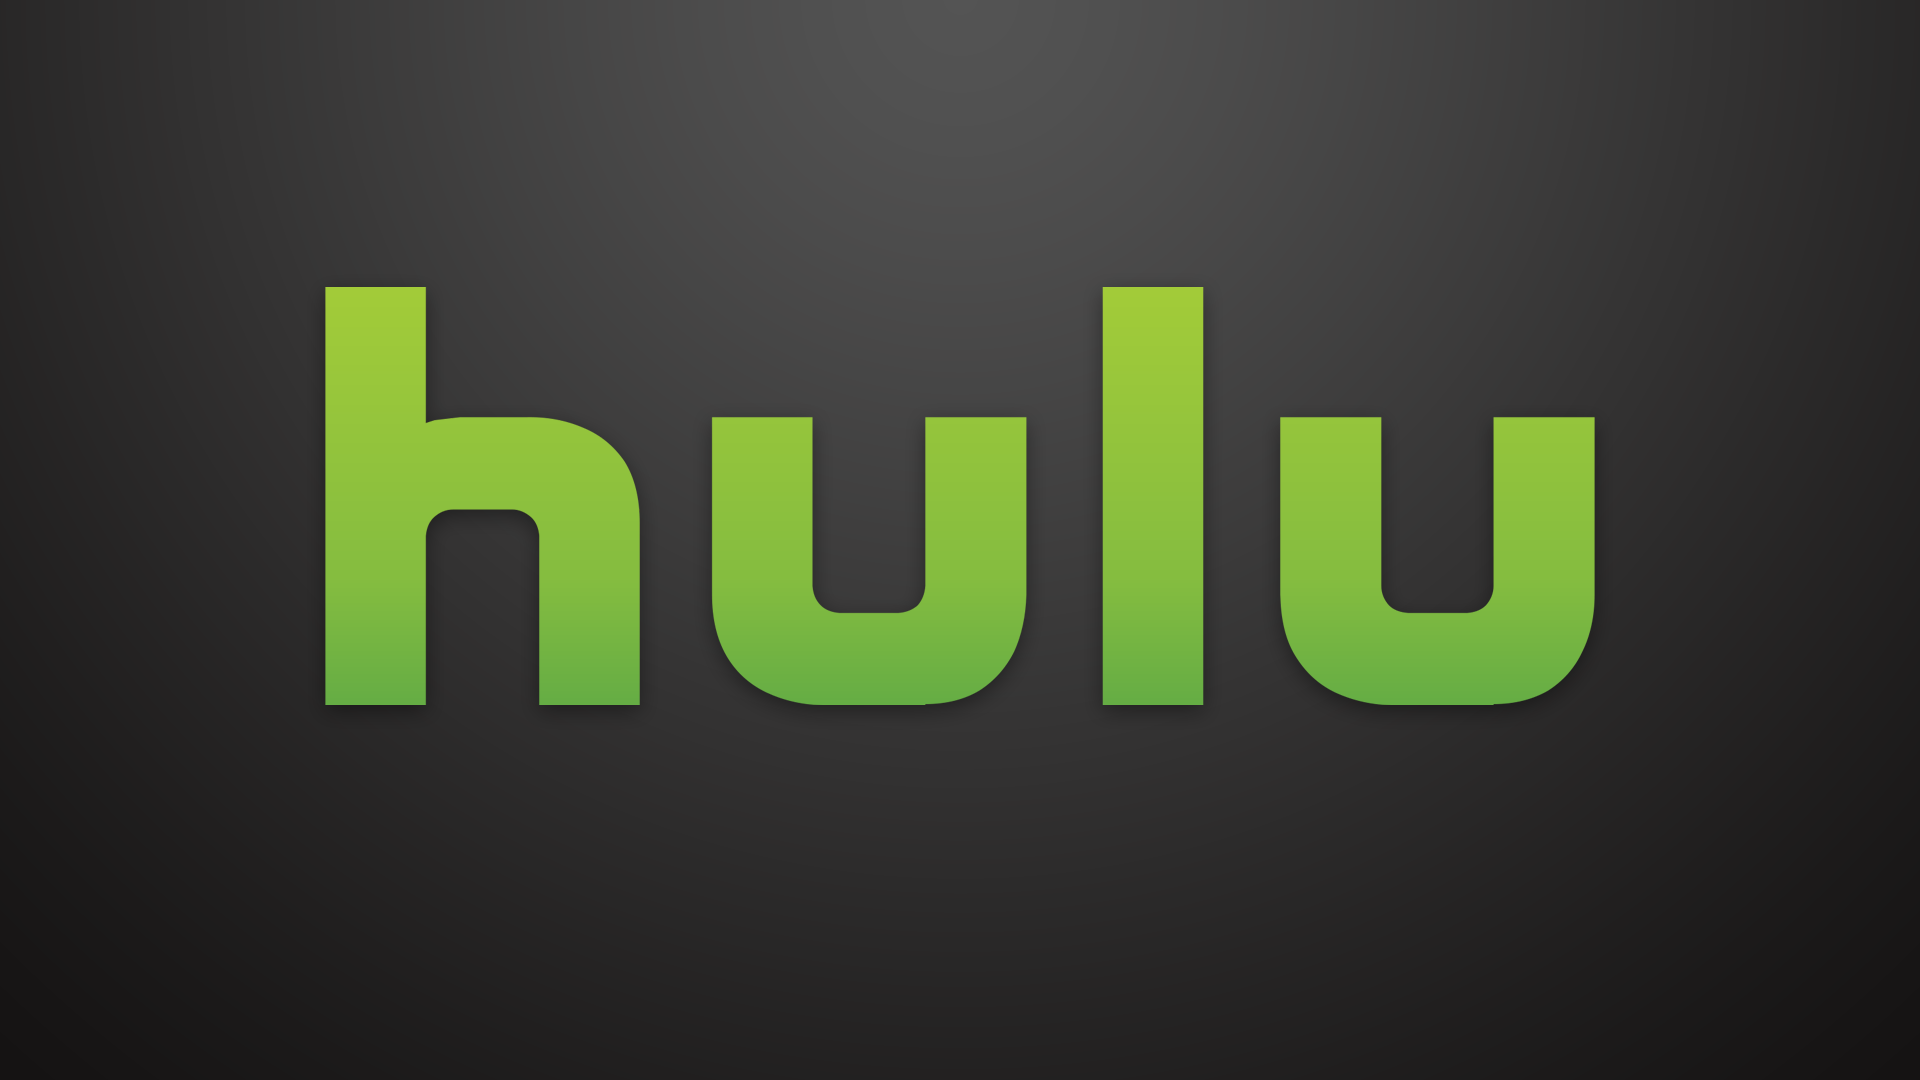 Hulu Pitching Combination Of On Demand Streaming With Live